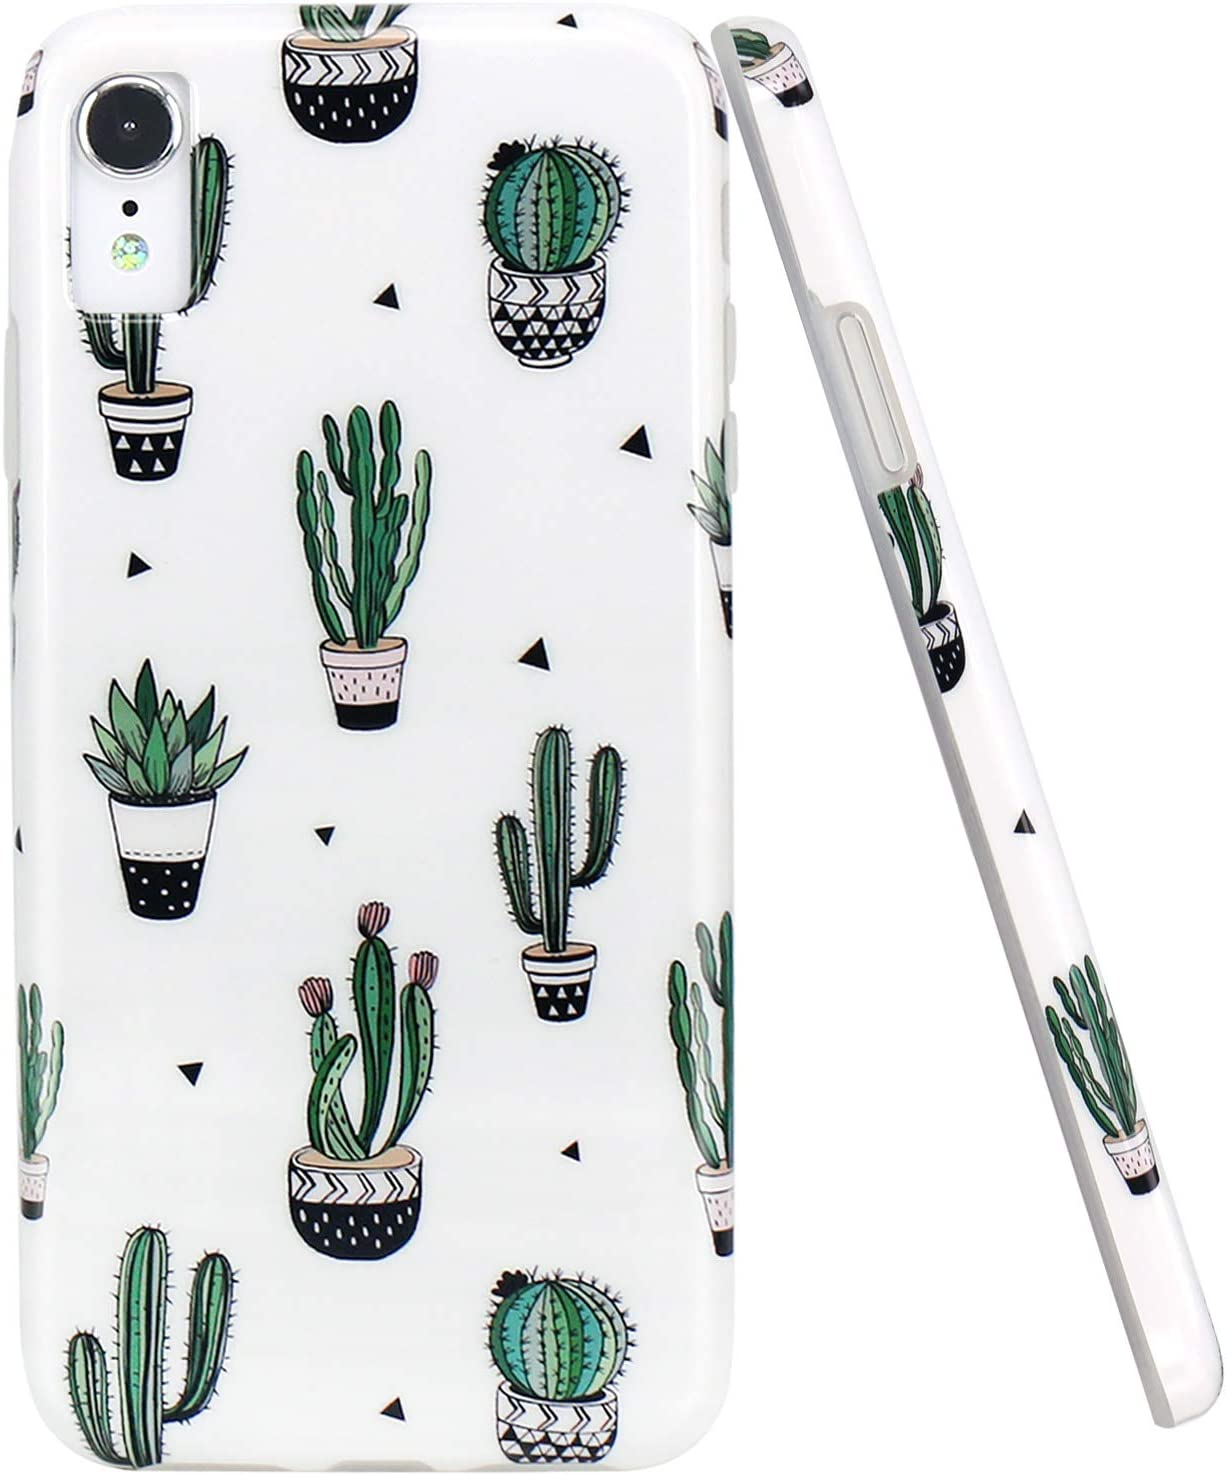 JAHOLAN Compatible iPhone XR Case Cute Green Cactus Design Clear Bumper TPU Soft Rubber Silicone Cover Phone Case for iPhone XR 2018 6.1 inch